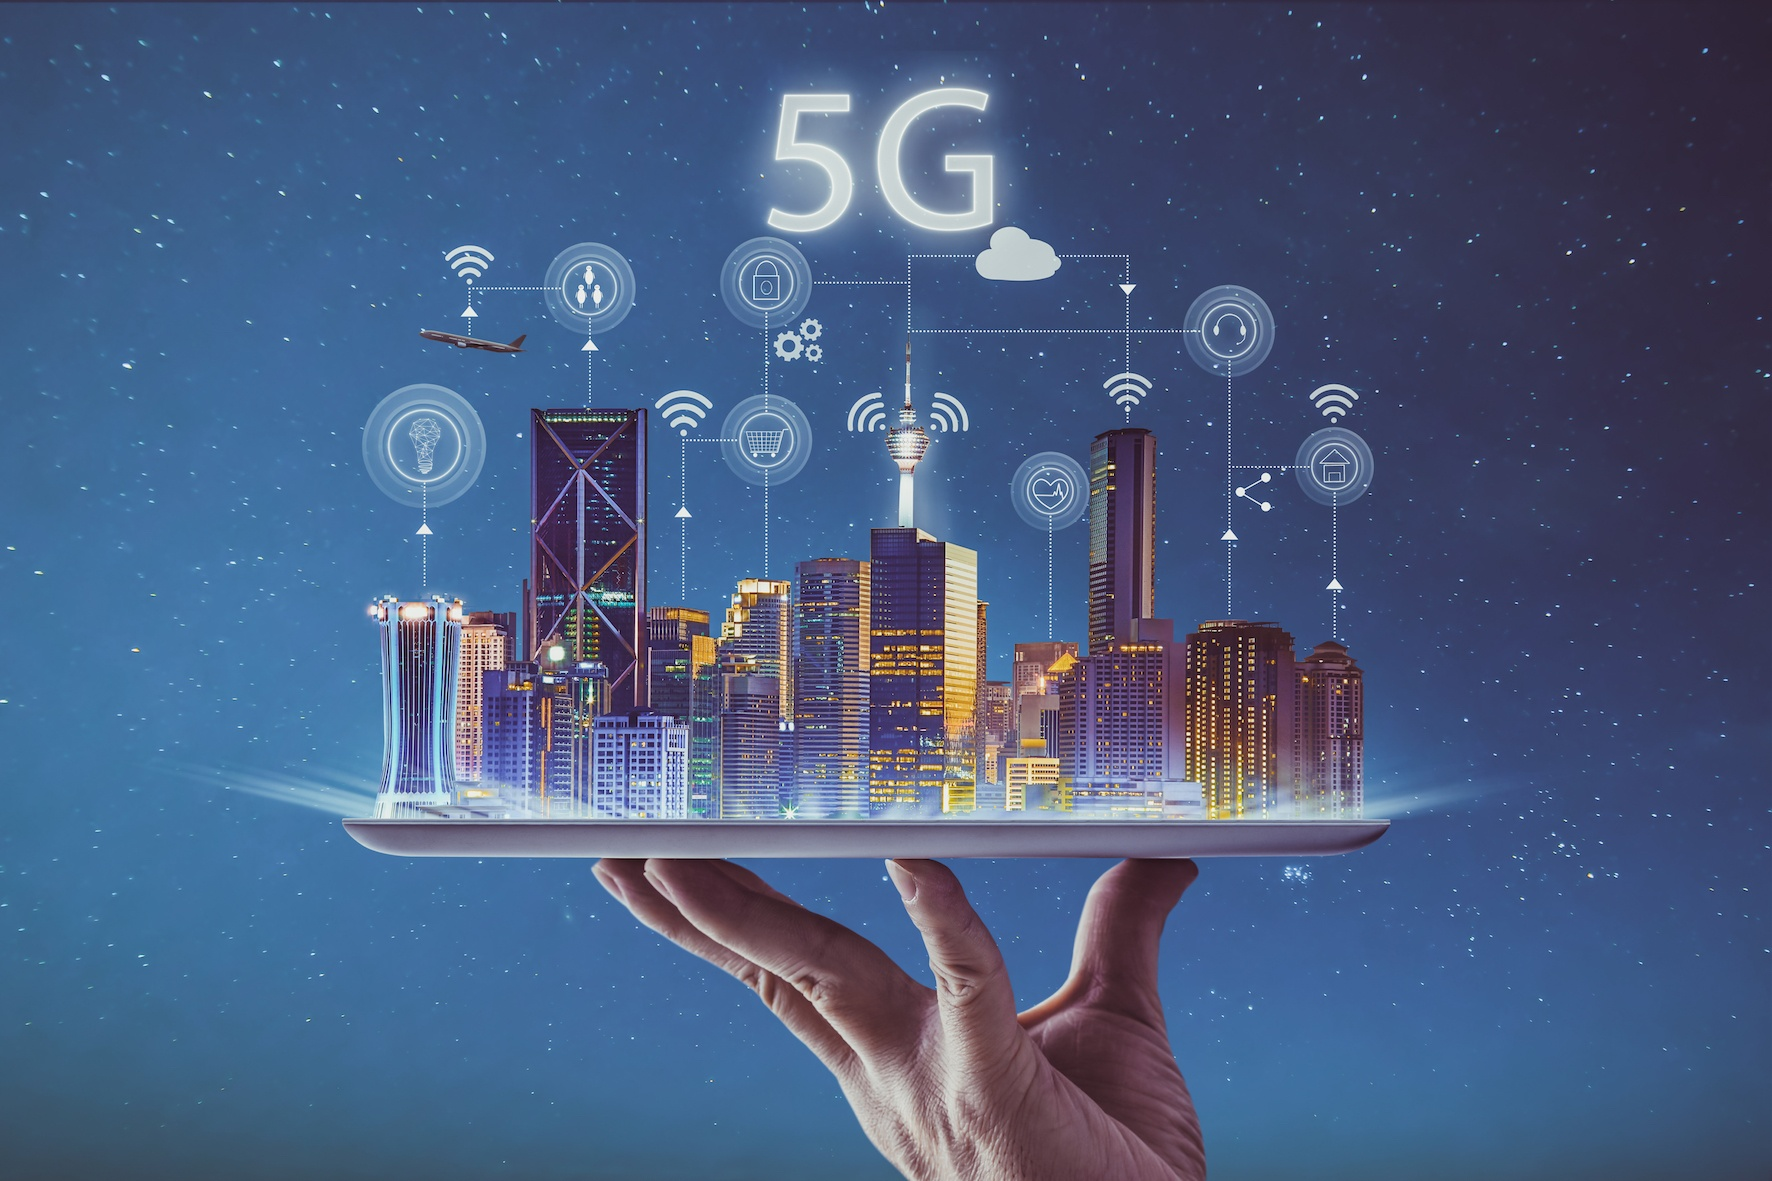 5G connectivity